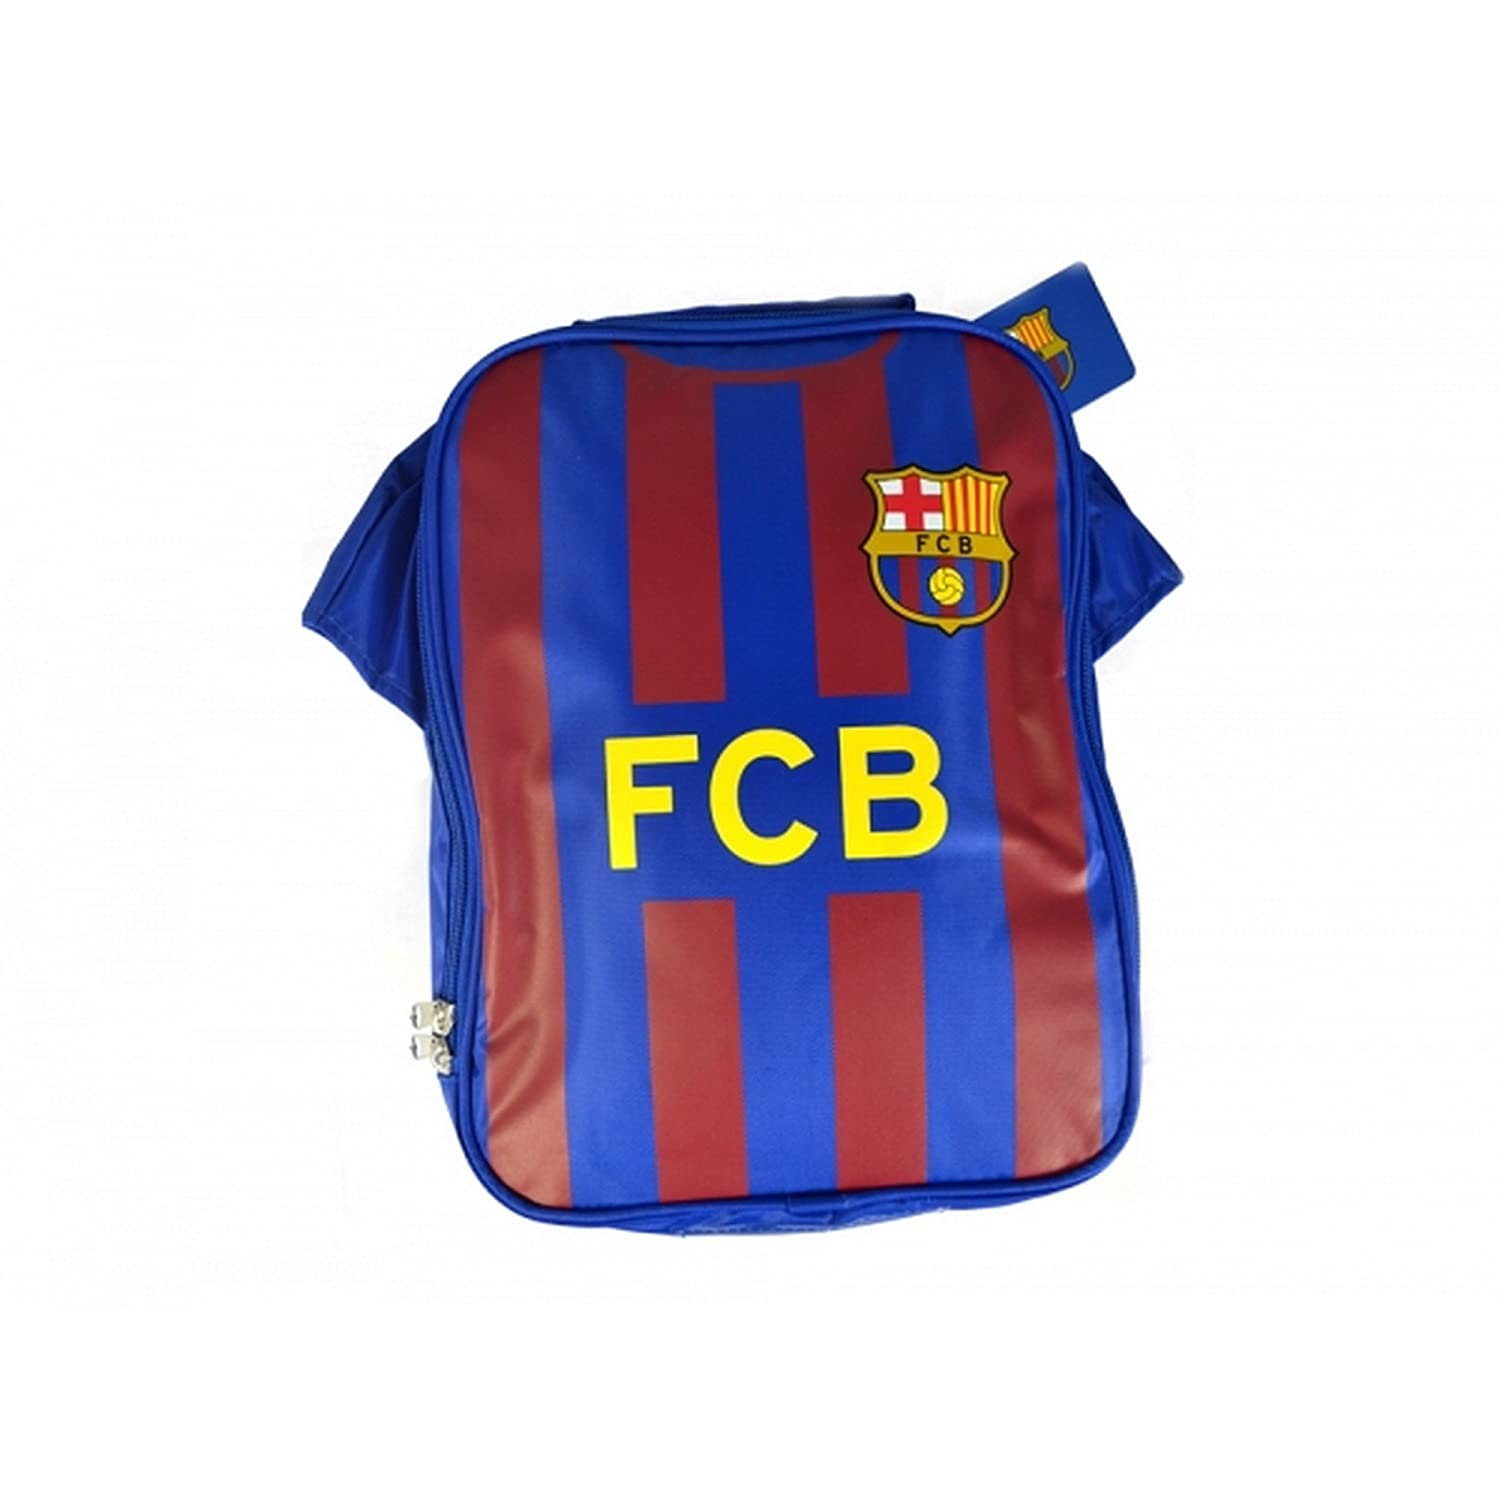 Amazon.com : FC Barcelona Official Soccer Kit Lunch Bag (One Size) (Red/Blue) : Sports & Outdoors